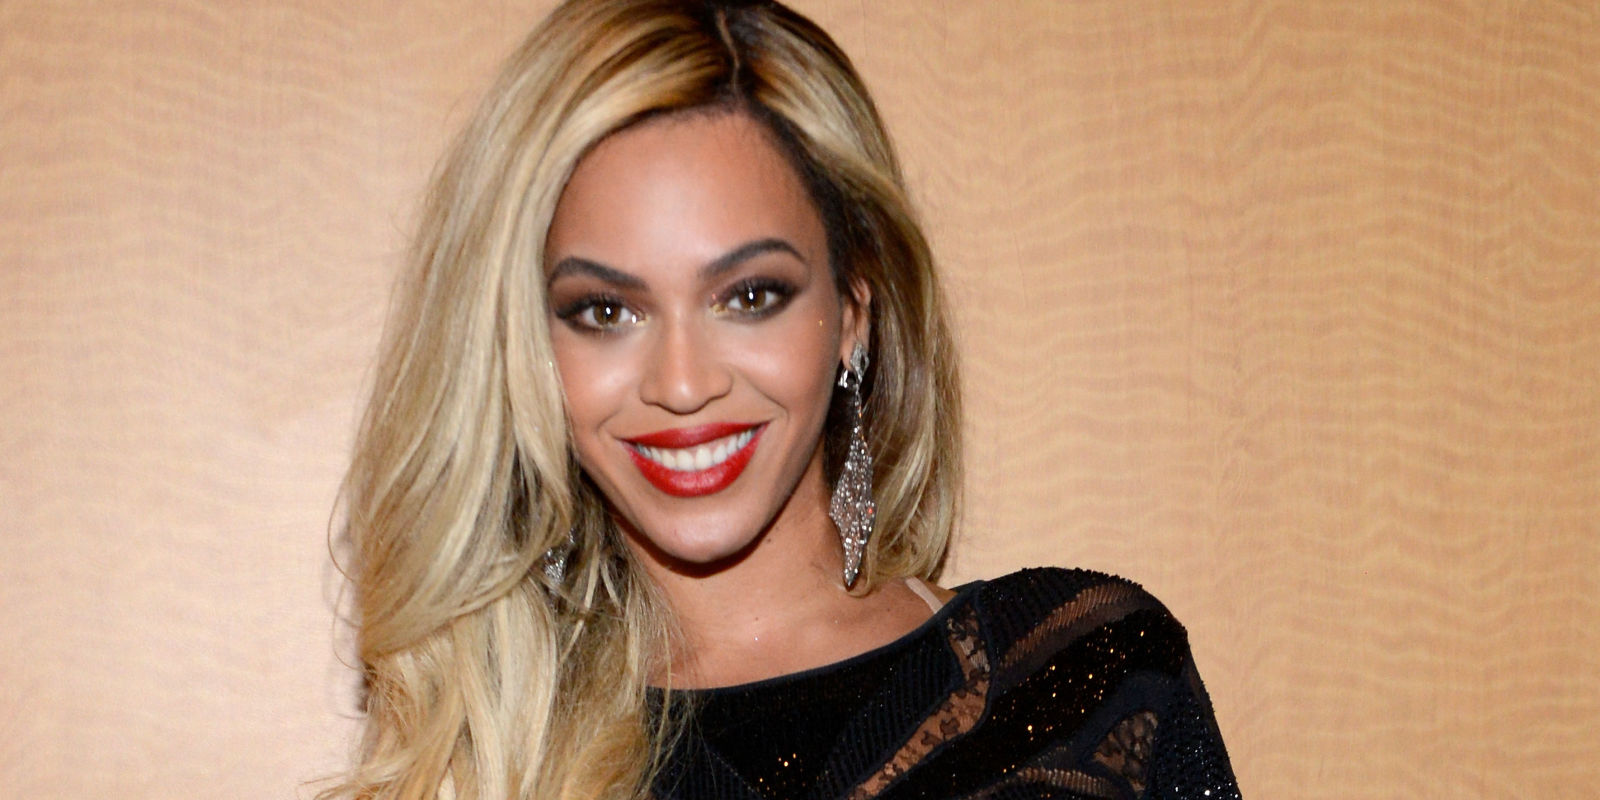 Beyonce spends £200,000 on a new pair of high heels